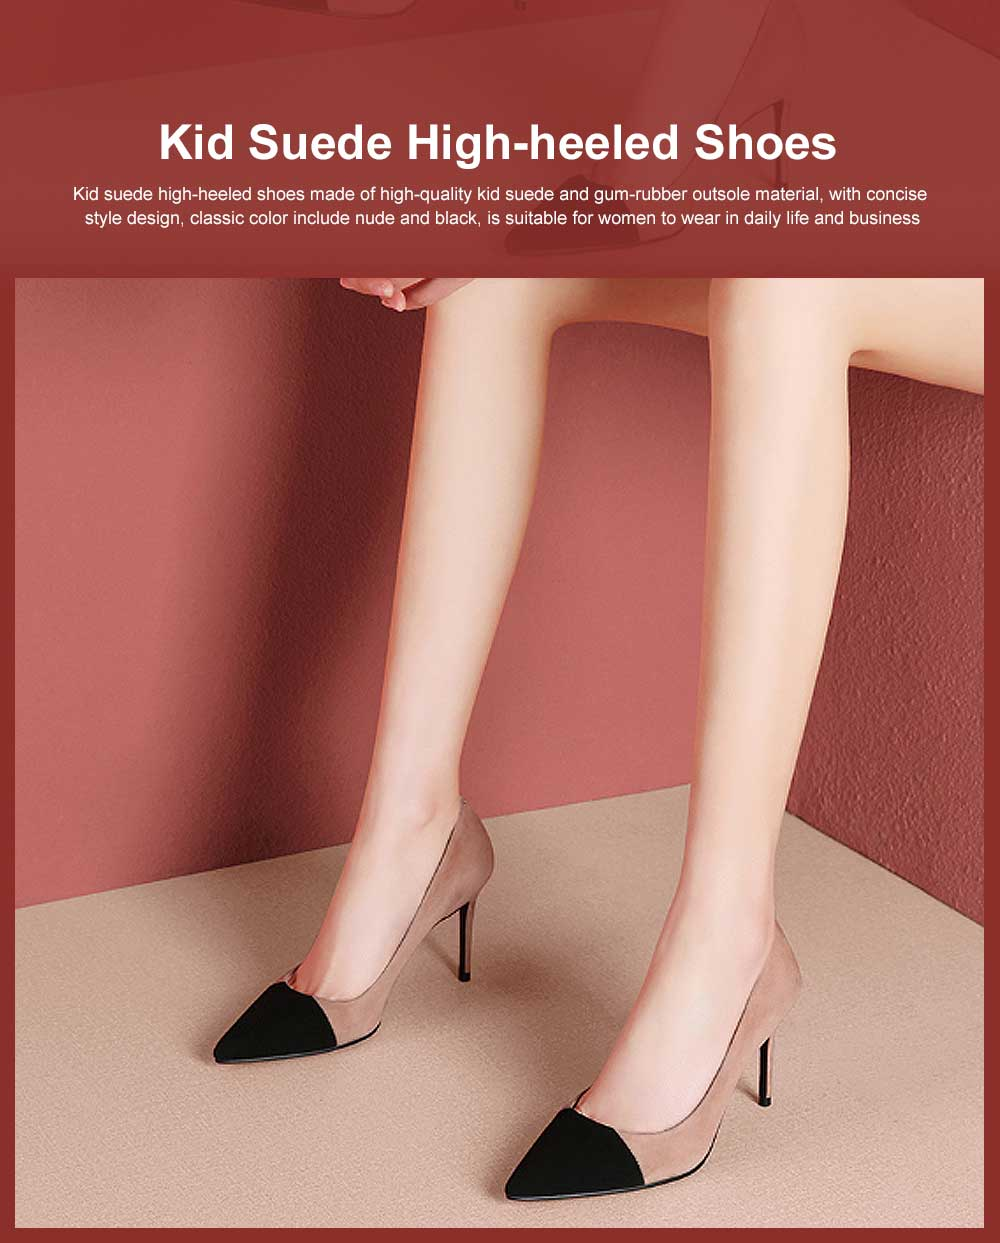 Kid Suede High-heeled Shoes for Women, Nude Black Concise Style High Heels, Pointed Design Gum-rubber Outsole Sandals 0